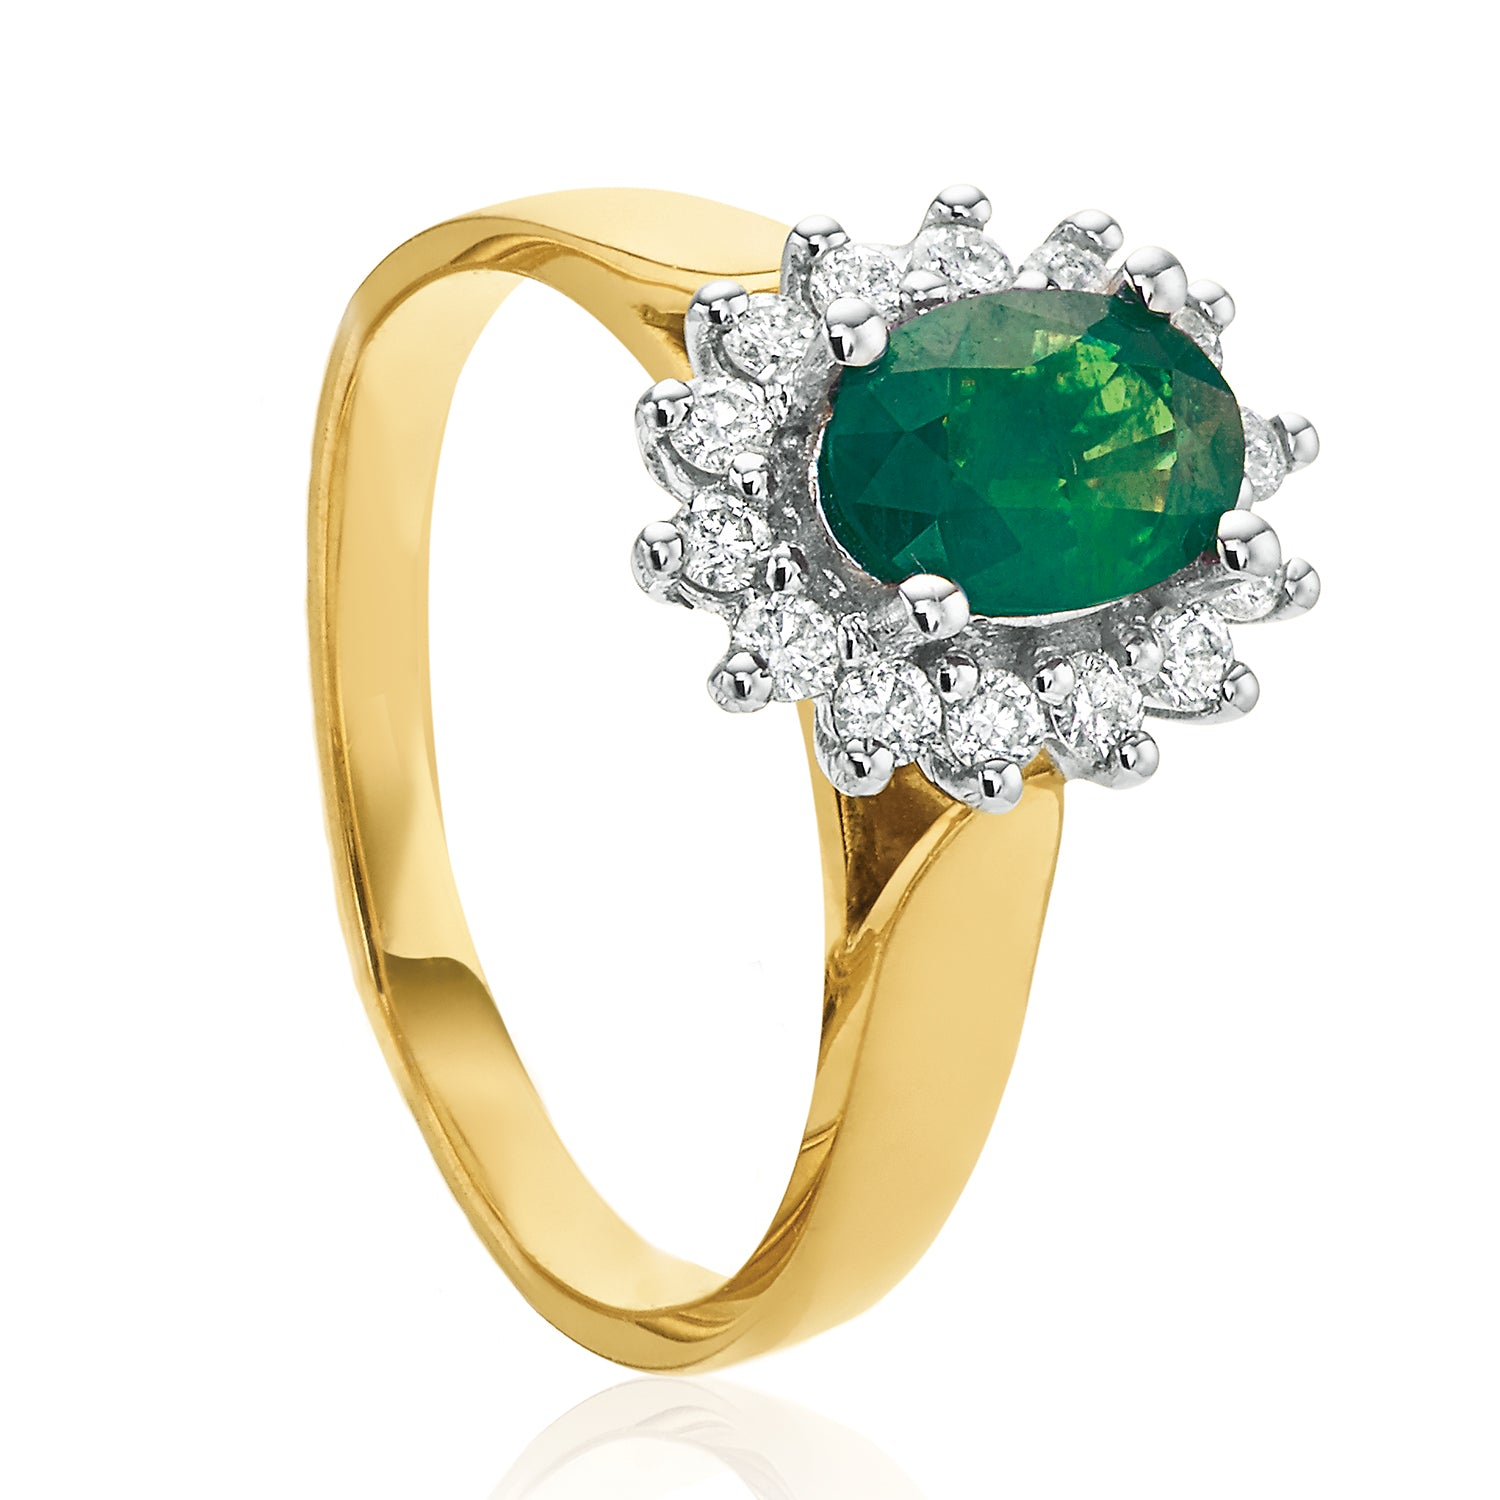 18ct Two Tone Gold Oval Cut Emerald with 1/4 CARAT tw of Diamonds